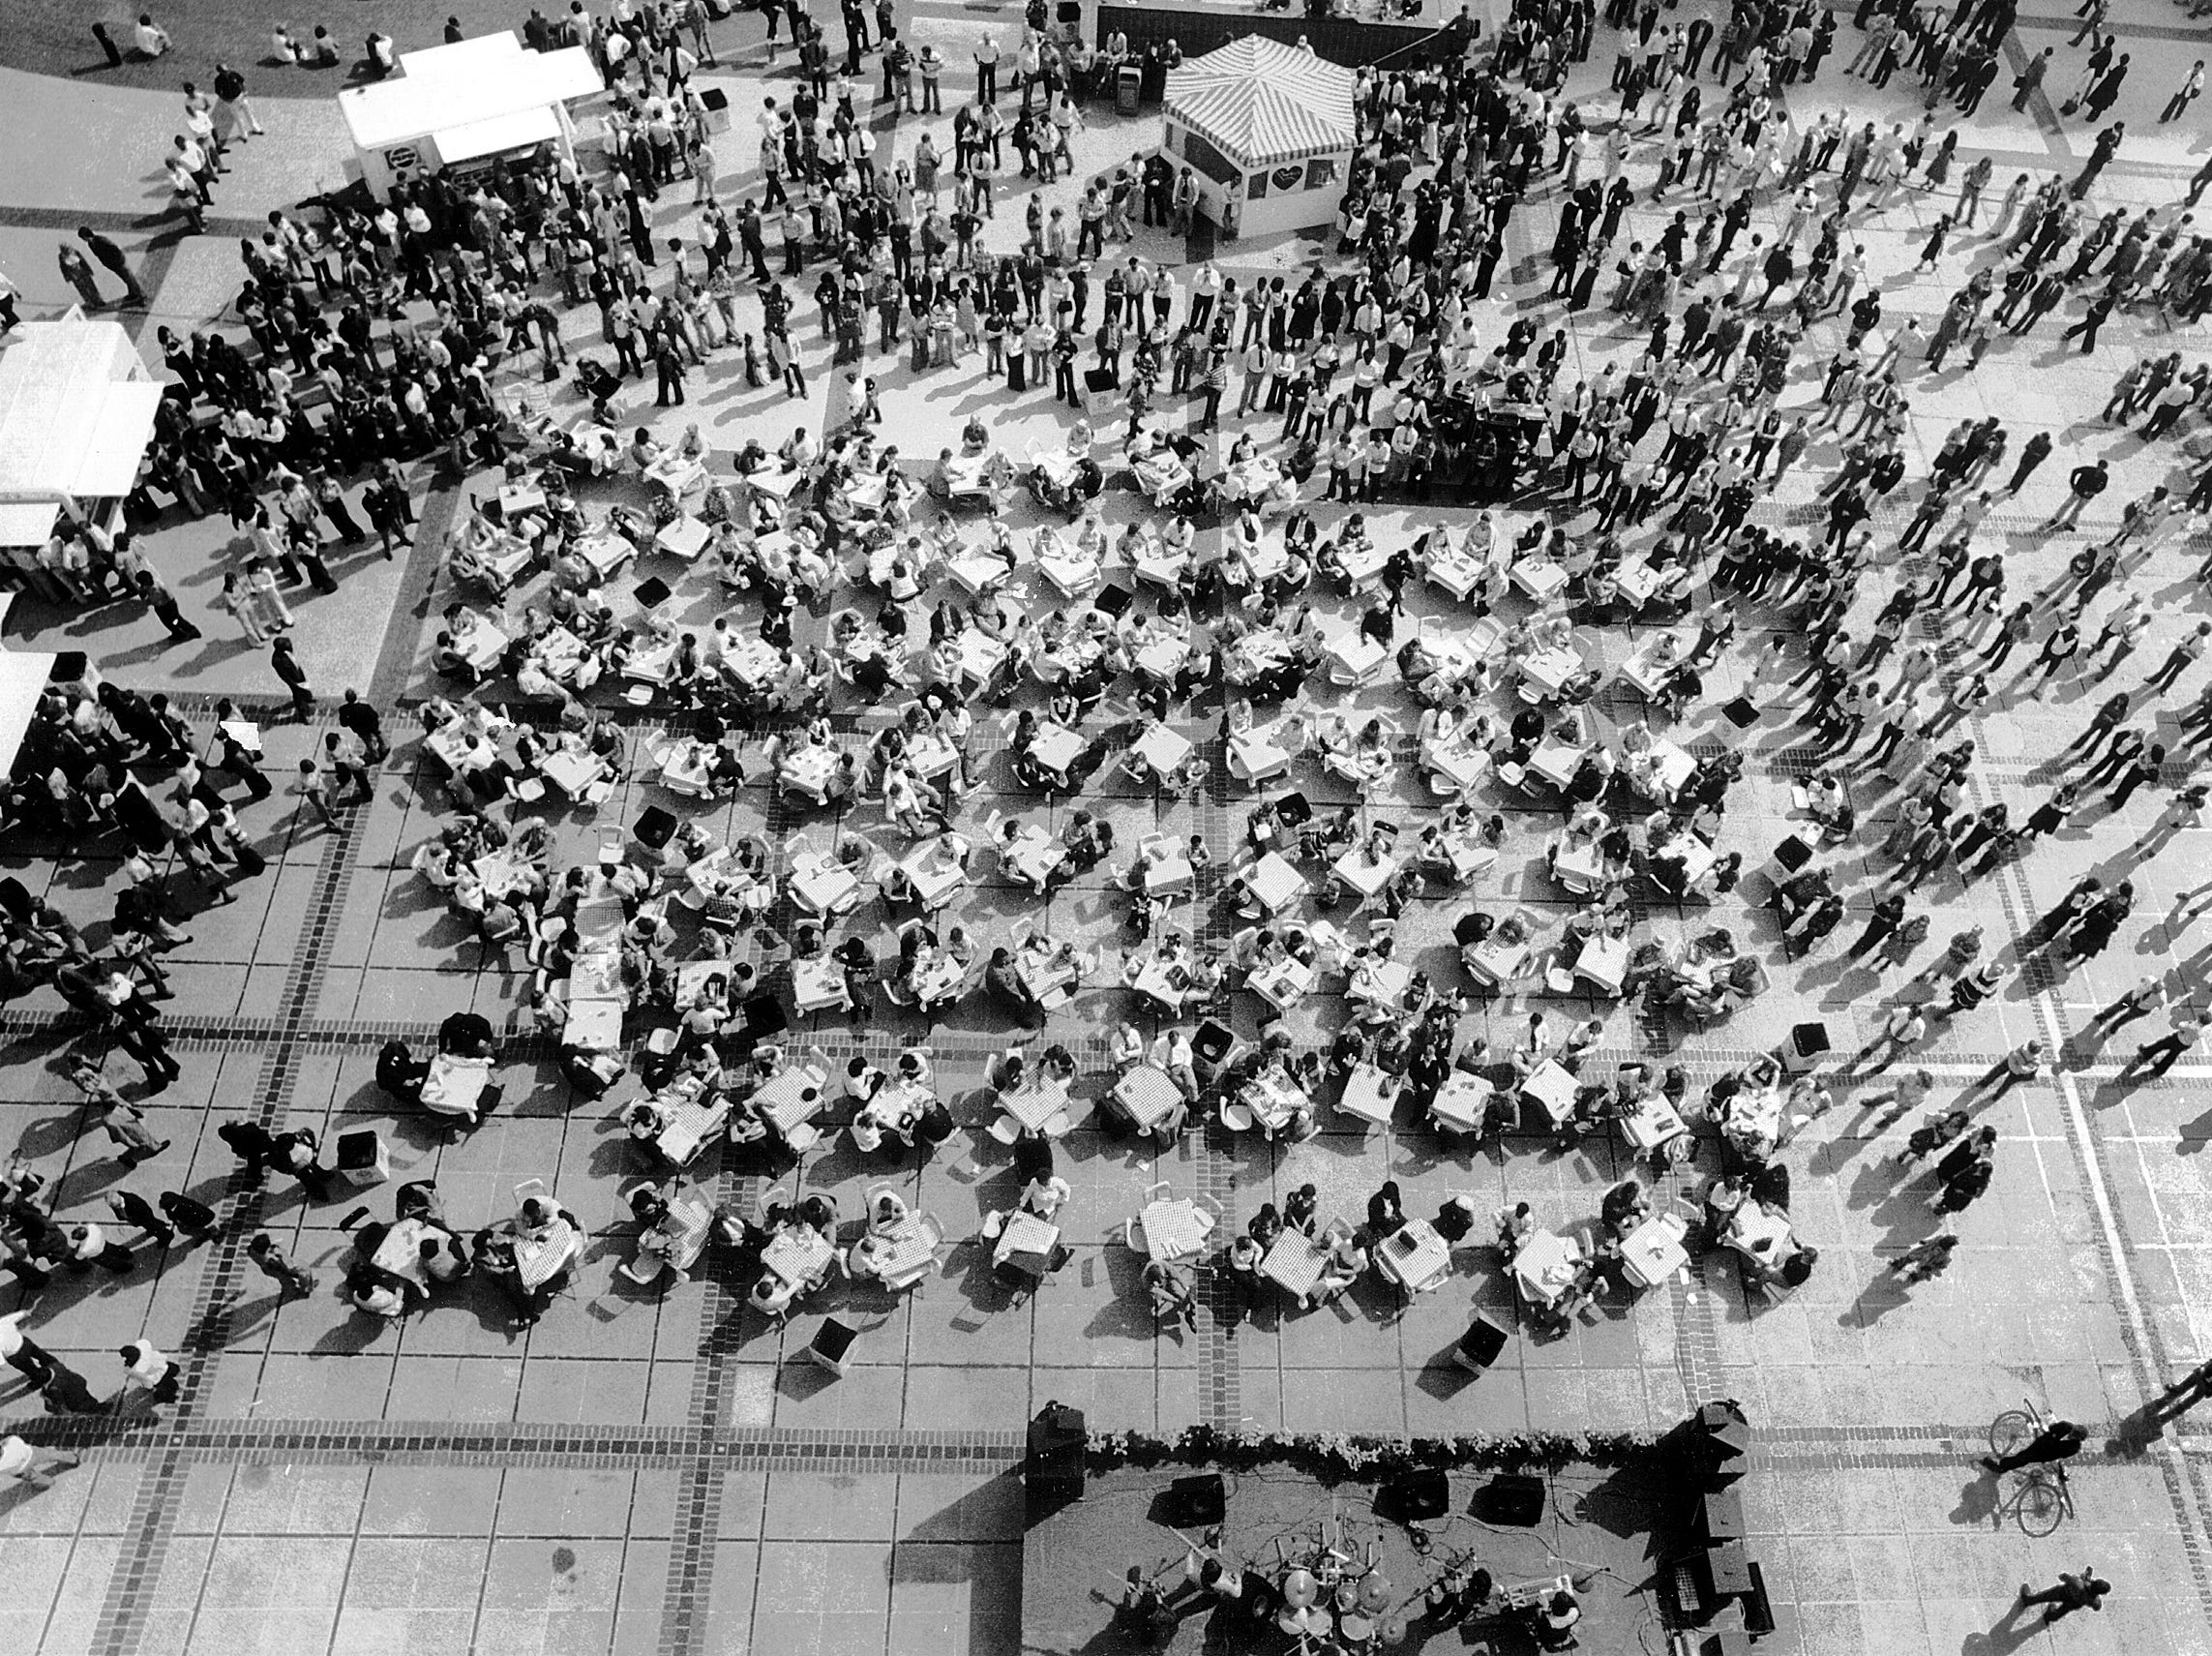 """October 10, 1978 - """"Shylo"""" (on stage at bottom of photo) entertains the lunch time crowd at Oktoberfest in Civic Center Plaza as seen in this photograph taken from the roof of City Hall on October 10, 1978."""